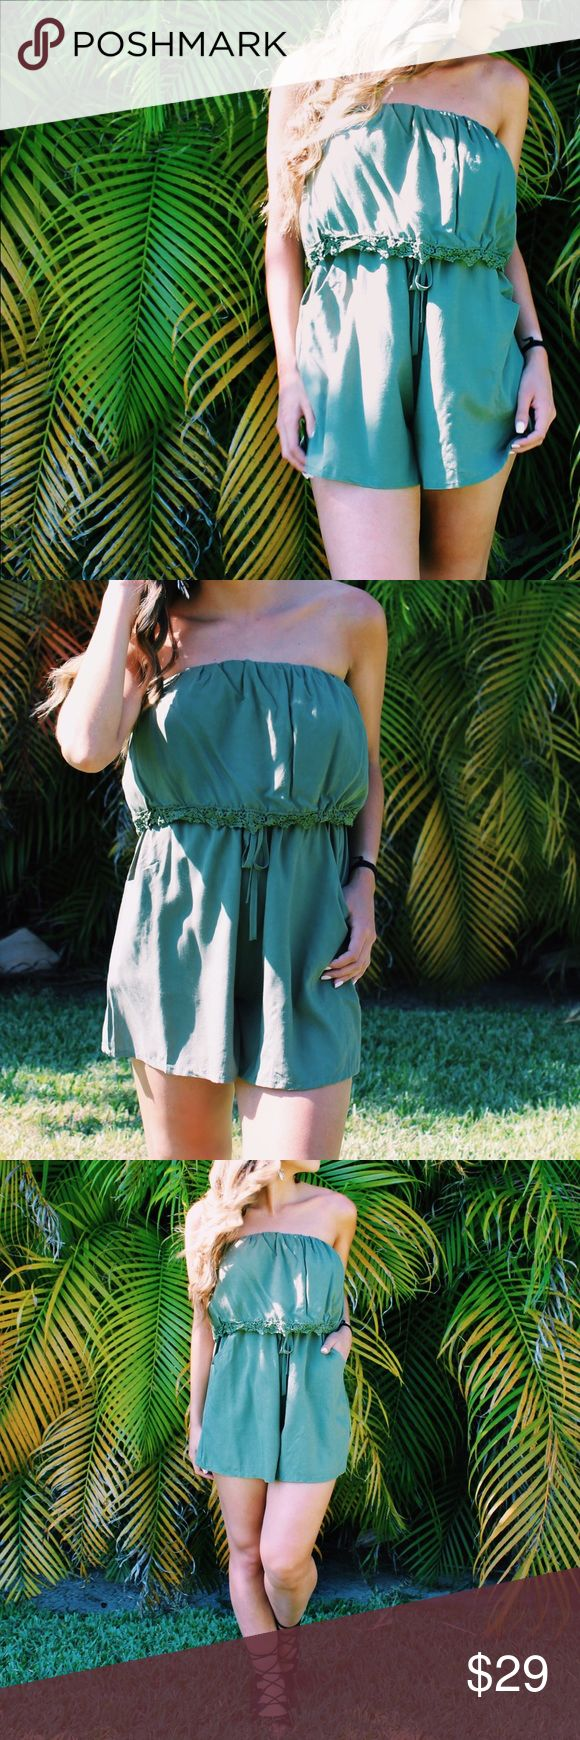 •Congo Playsuit• Inspired by Central Africa's lushes rainforest our Congo playsuit offers a beautiful green shade with romantic lace detailing and waist tie. Easily take our it from day to night by adding some strappy black heels.  •Color: Green •Style: Romper •Features/Details: Beautiful green with beautiful lace detailing and waist tie.  •Photos are of actual product  •Price is firm  •10% discount on bundles of two or more  •Photo Credit: The Wanderlust Bazaar  •Bohemian, boho, army green…